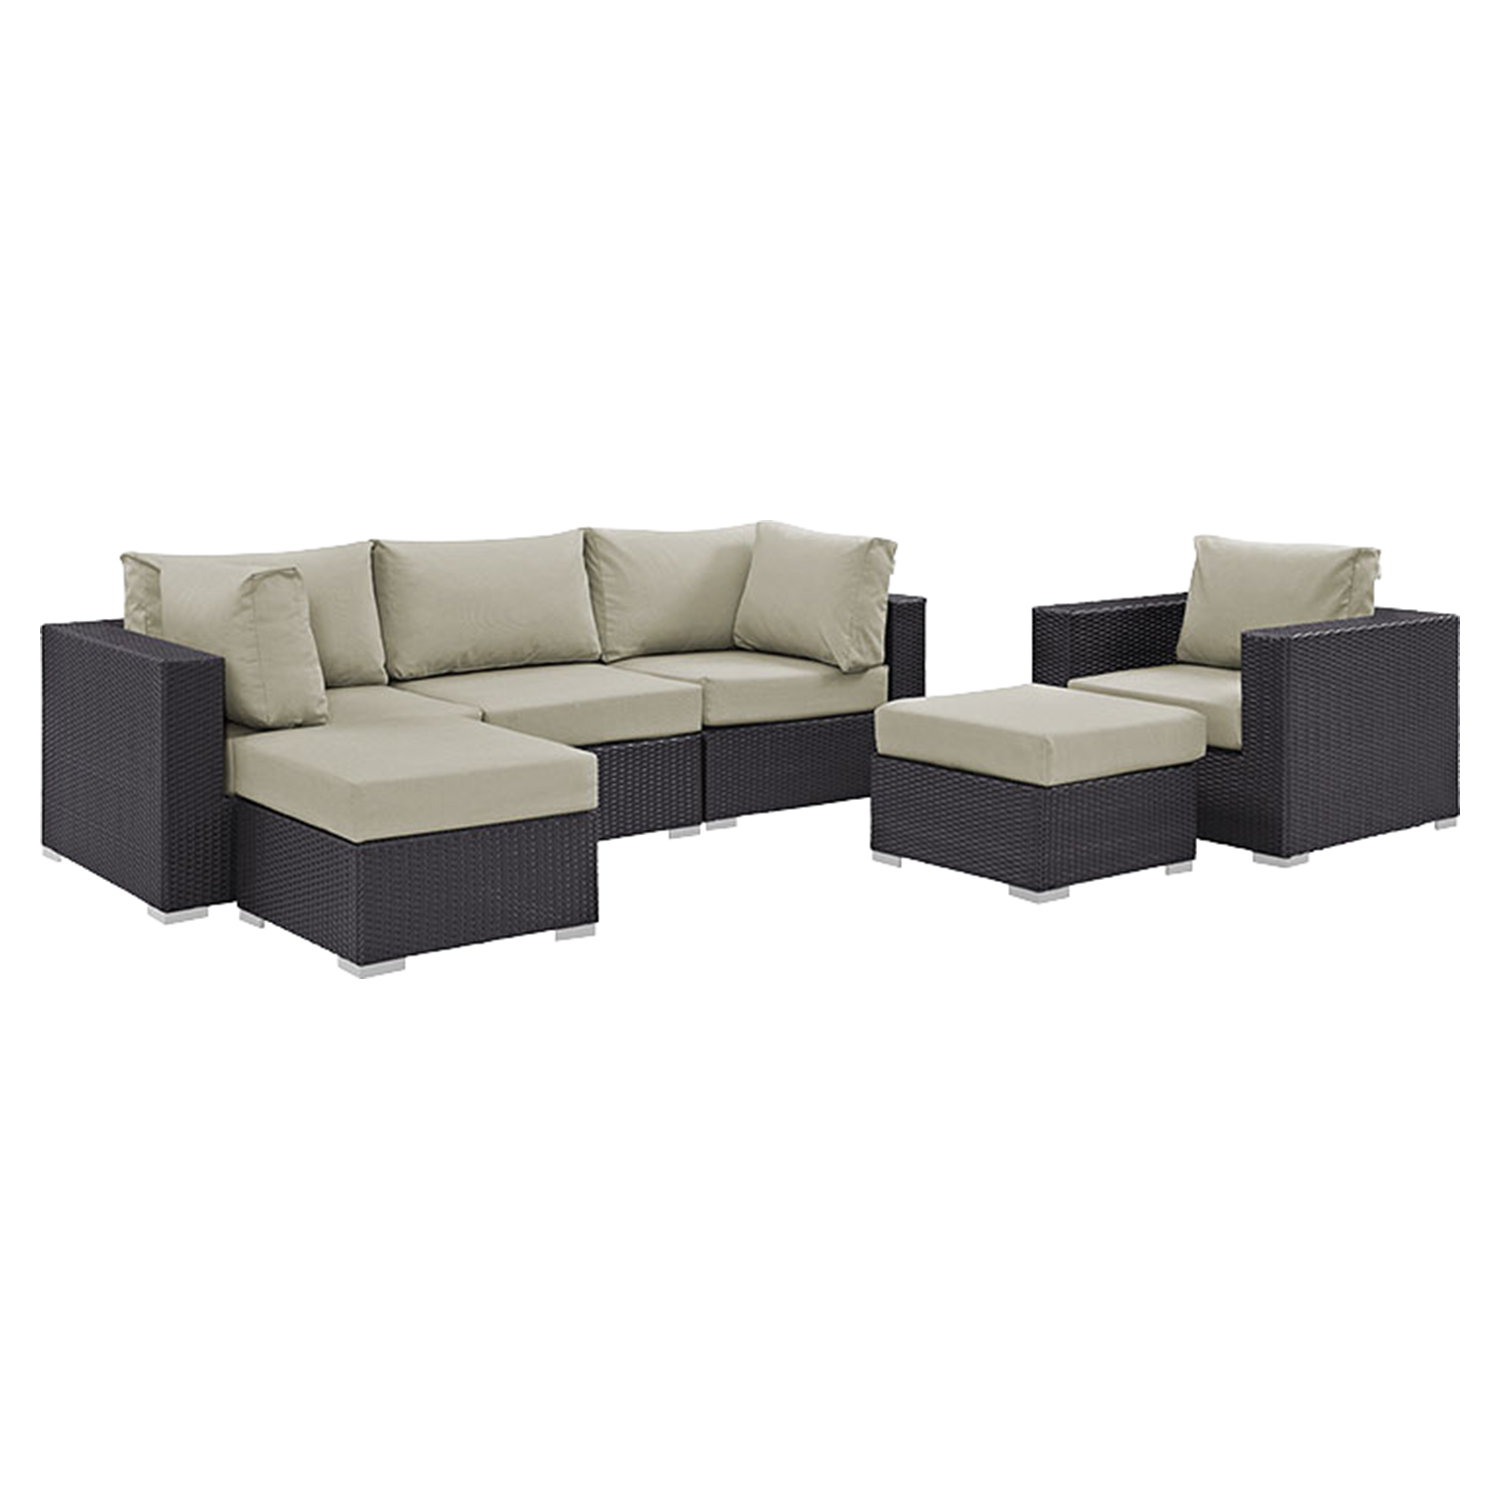 Convene 6 Pieces Outdoor Patio Sectional Set - EEI-2207-EXP-SET